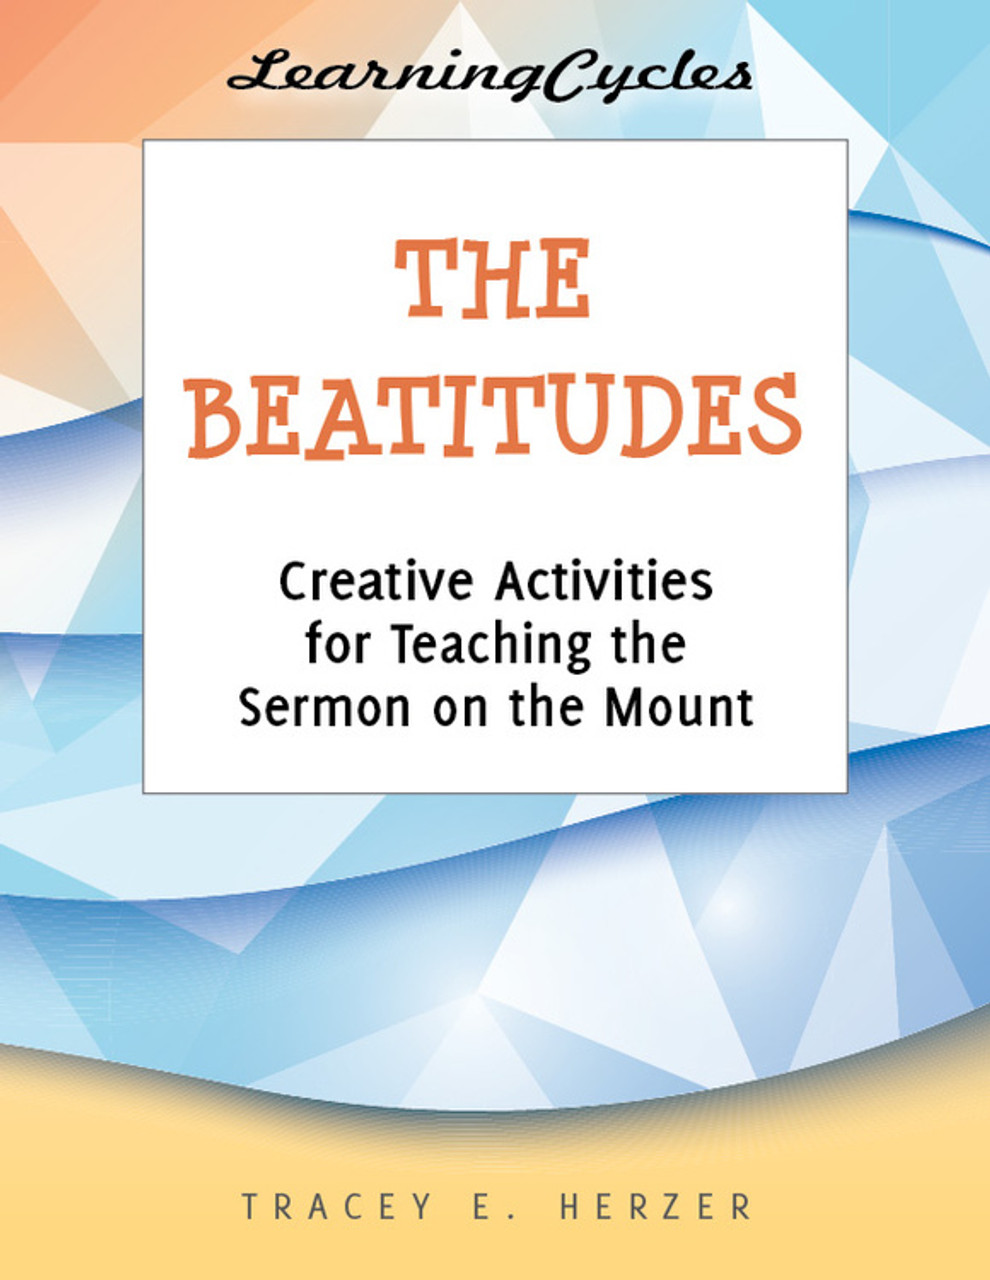 Learningcycles series the beatitudes eresource creative activities for teaching the sermon